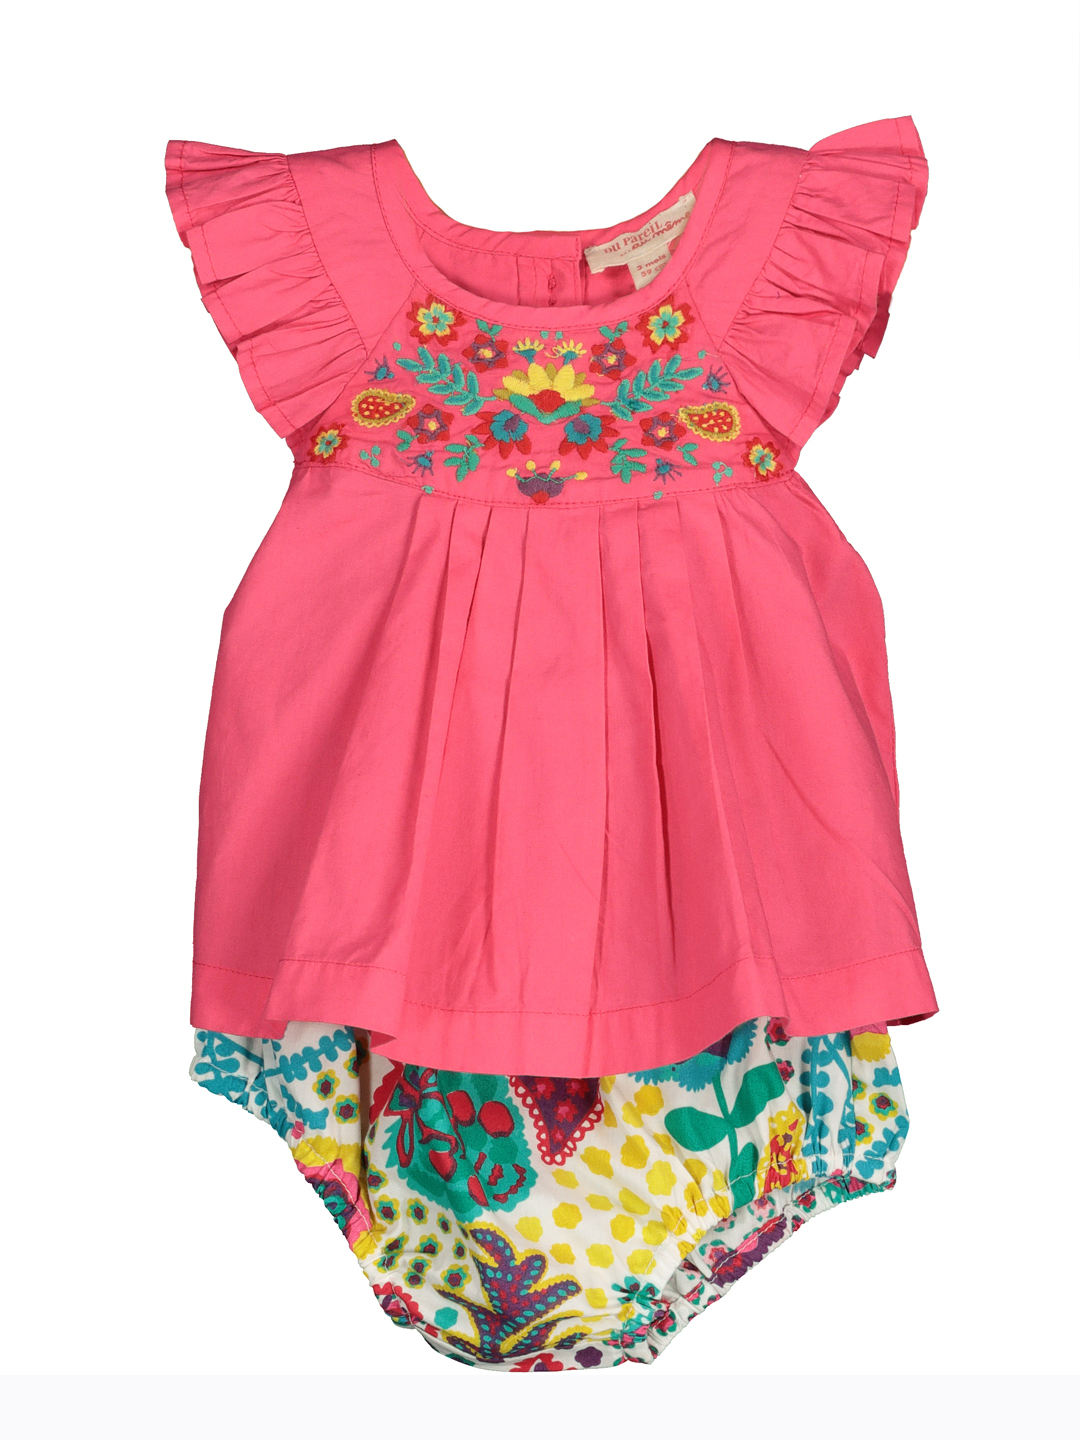 Ficaens Baby Girls Pink Dress With Printed Bloomers